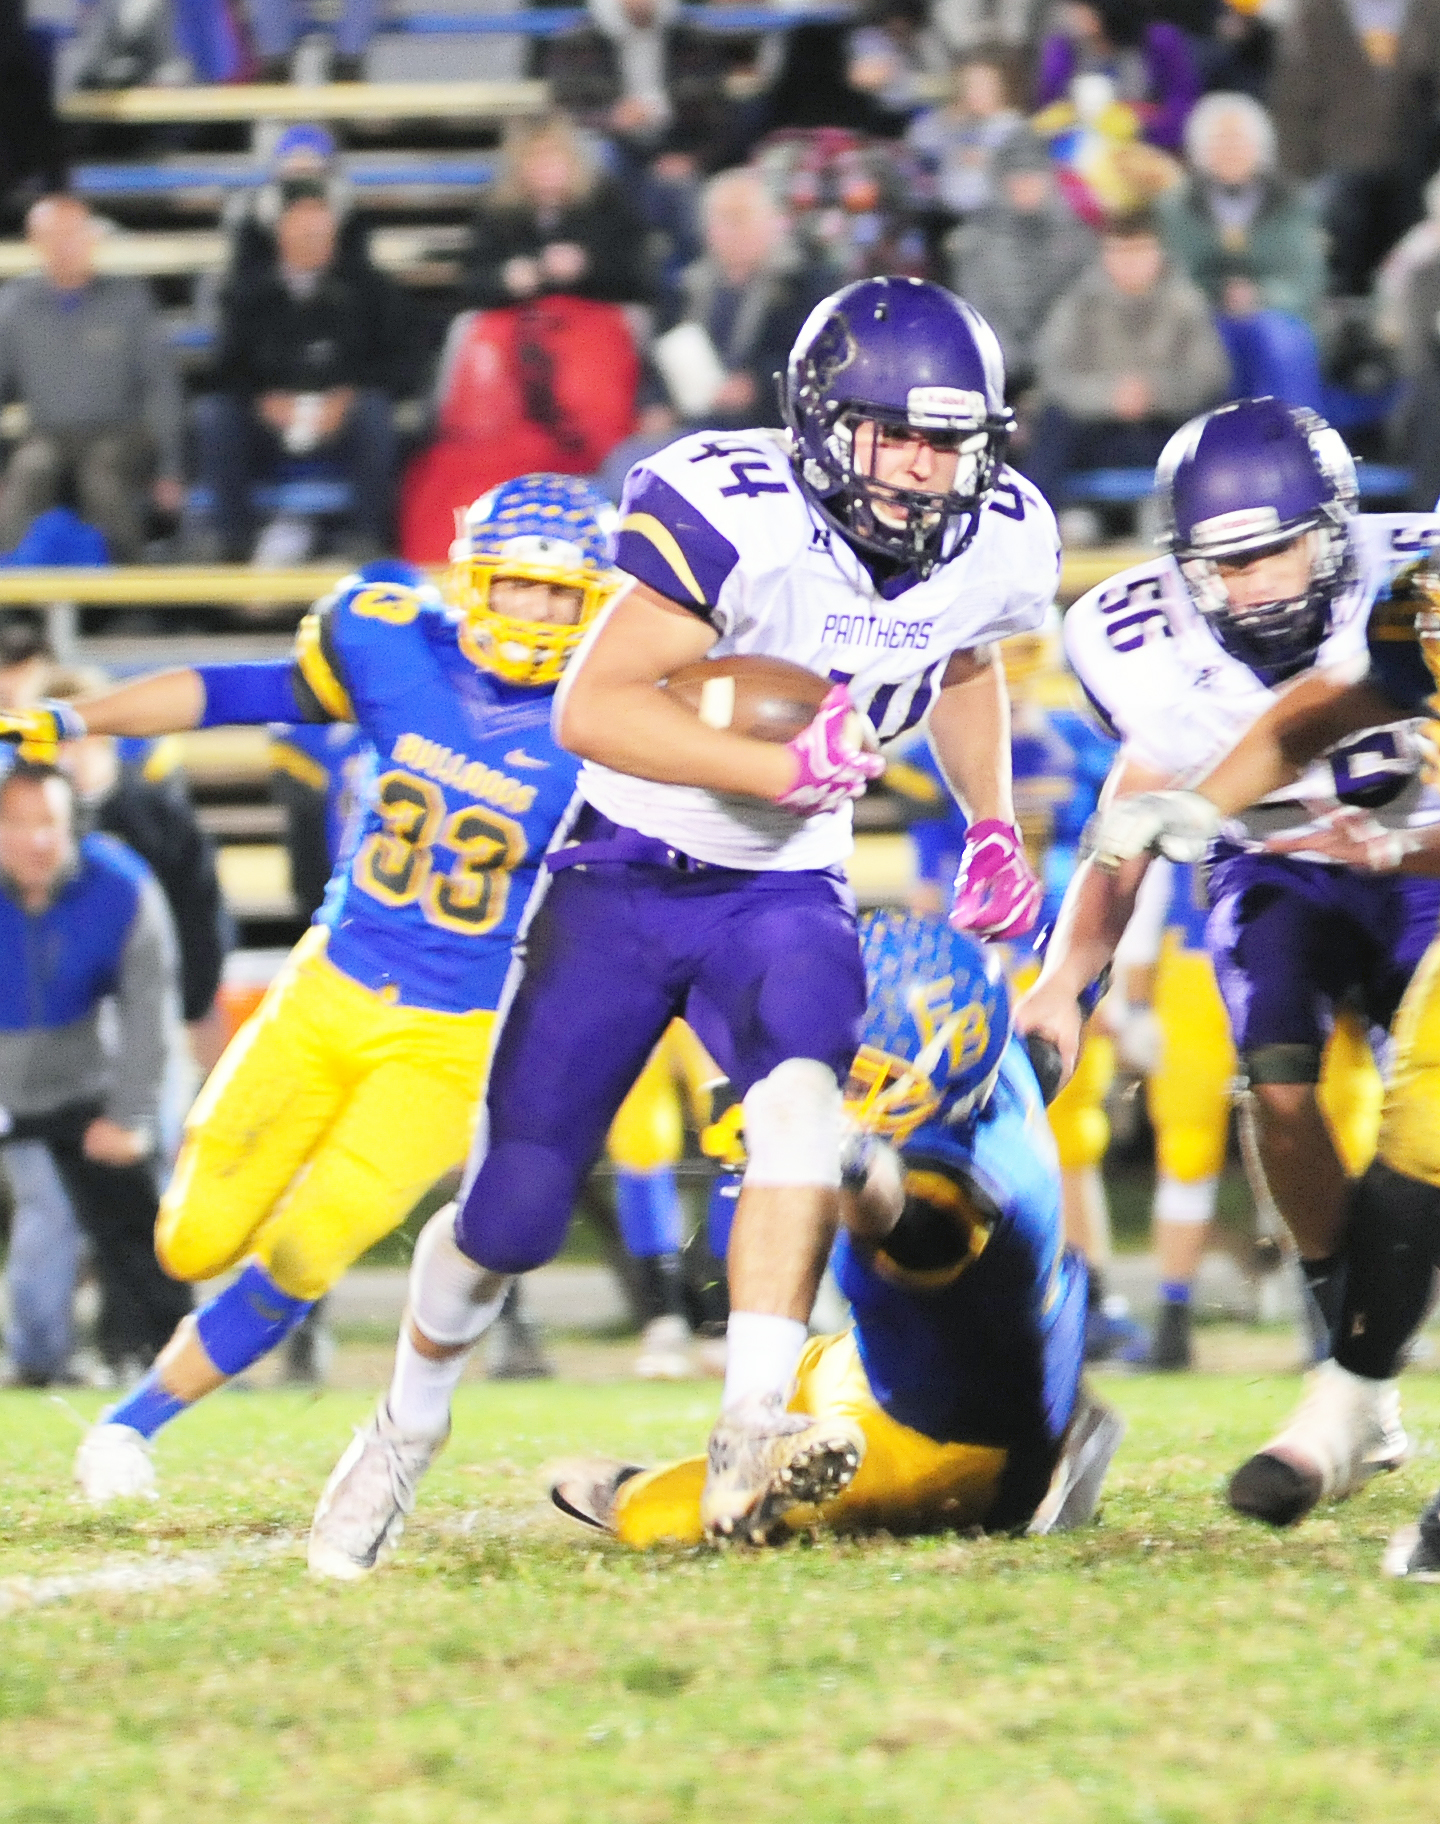 NICK INGRAM/Citizen photo North Platte senior running back Parker Rotterman breaks into the open field on a run against East Buchanan on Friday, Oct. 21. BOTTOM RIGHT: French looks to throw a pass between a pair of blockers.